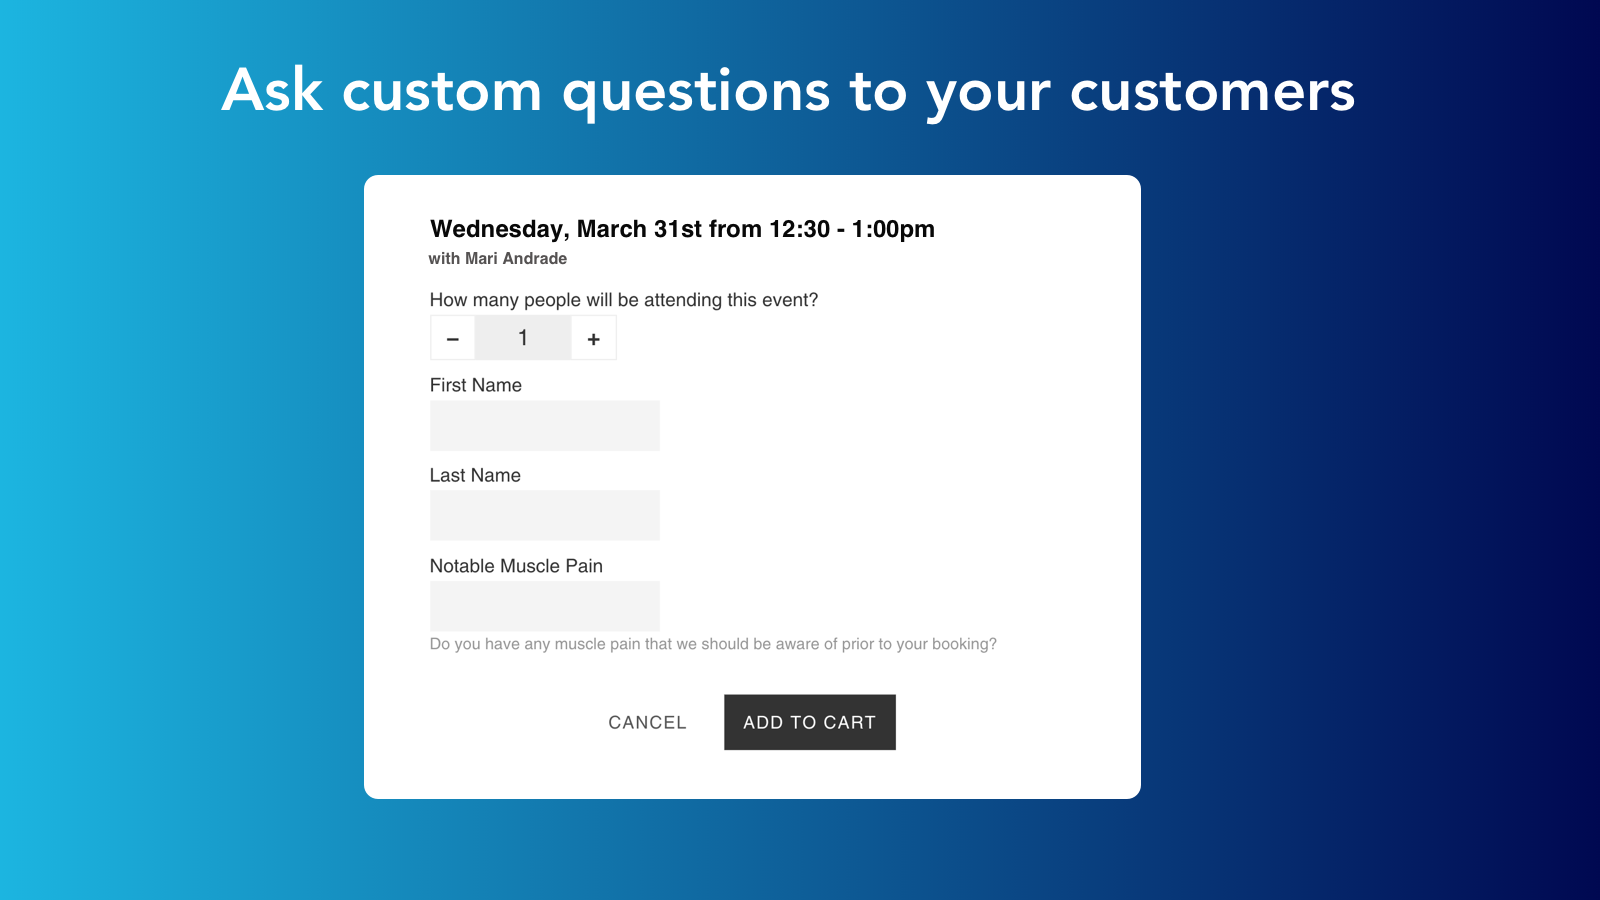 Ask questions to your customers before they book an appointment